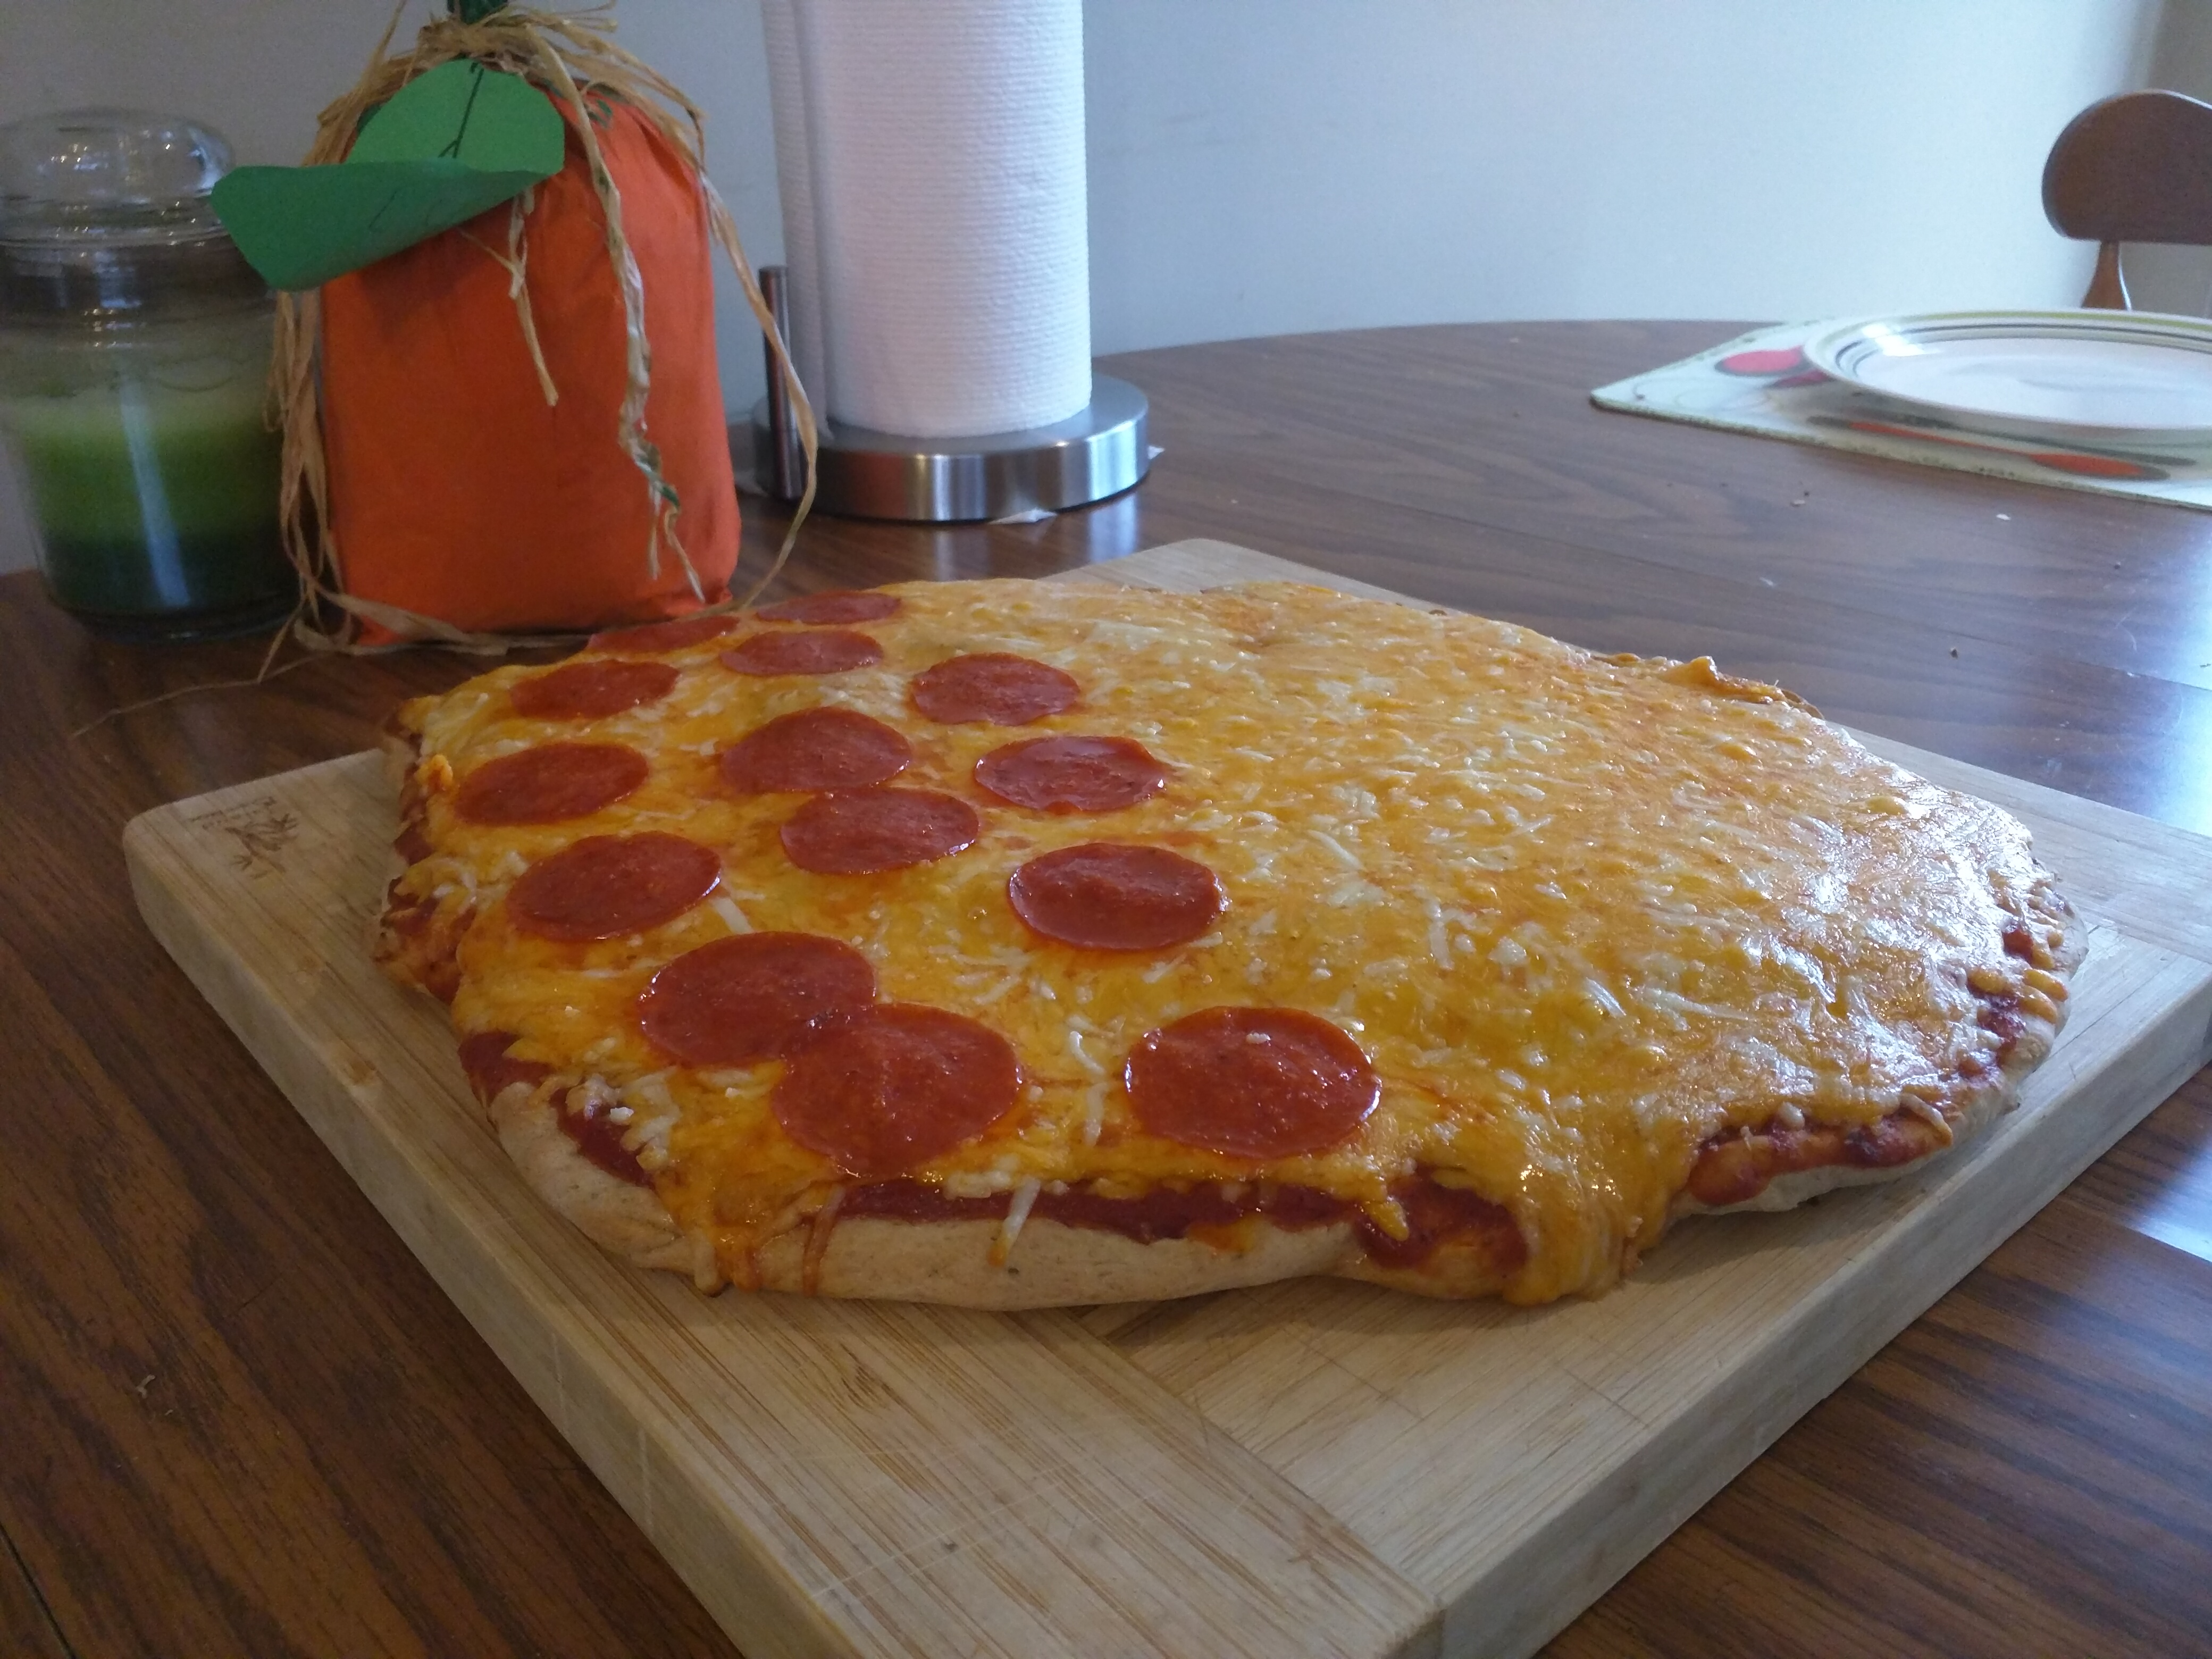 Home Plainville CT :: From scratch pizza dough, pepperoni and cheese